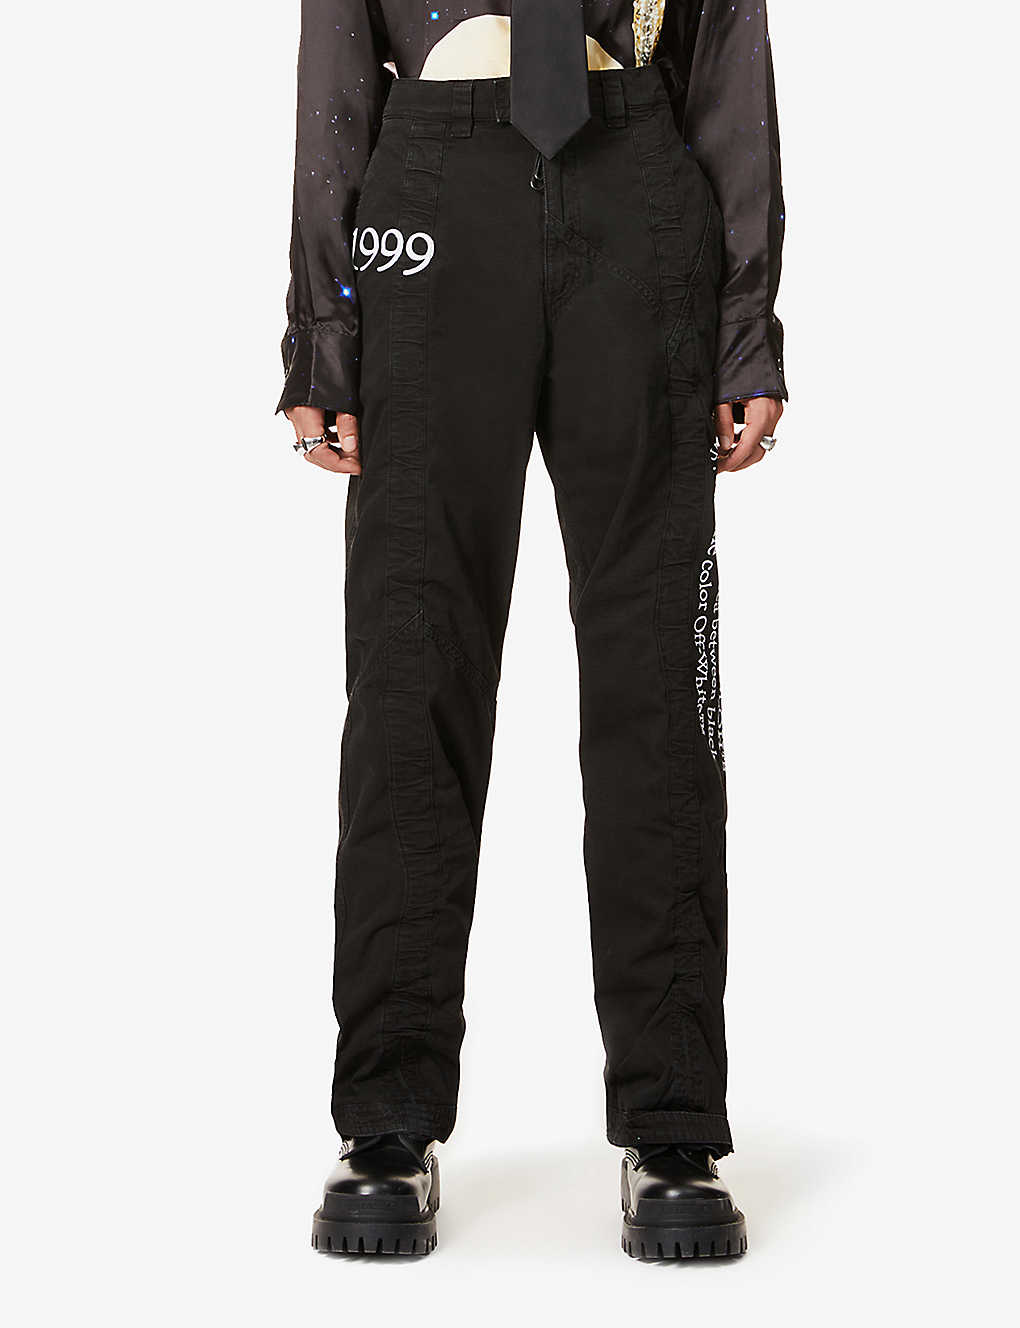 OFF-WHITE C/O VIRGIL ABLOH: 1999 Contour cotton cargo trousers